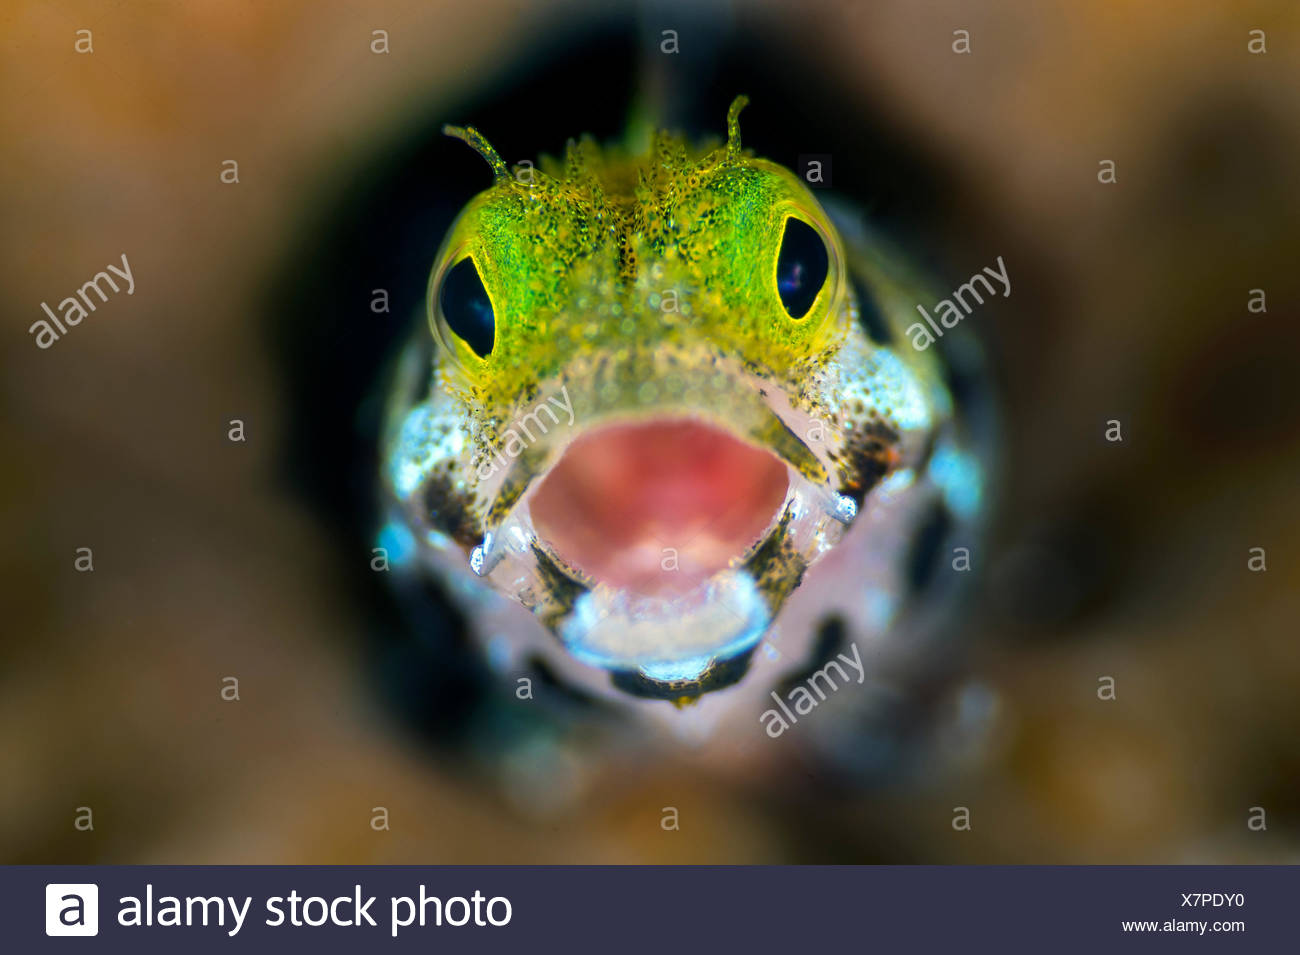 Secretary blenny (Acanthemblemari maria) yawns as it peers out from a hole in the reef. West Bay, Grand Cayman, Cayman Islands, British West Indies. Caribbean Sea. - Stock Image